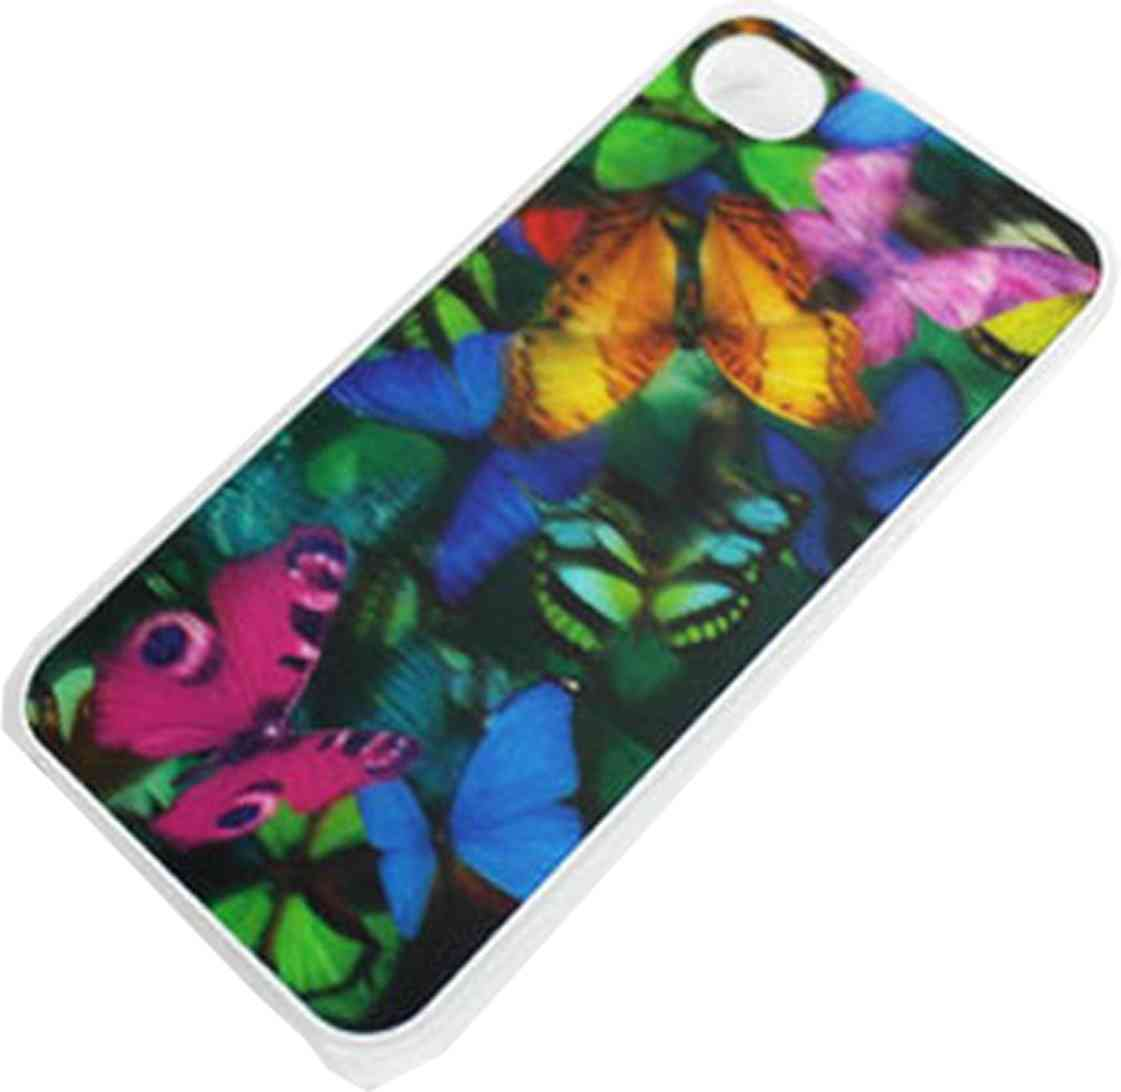 Carcasa Iphone 4 Y 4s 3d Case Butterfly